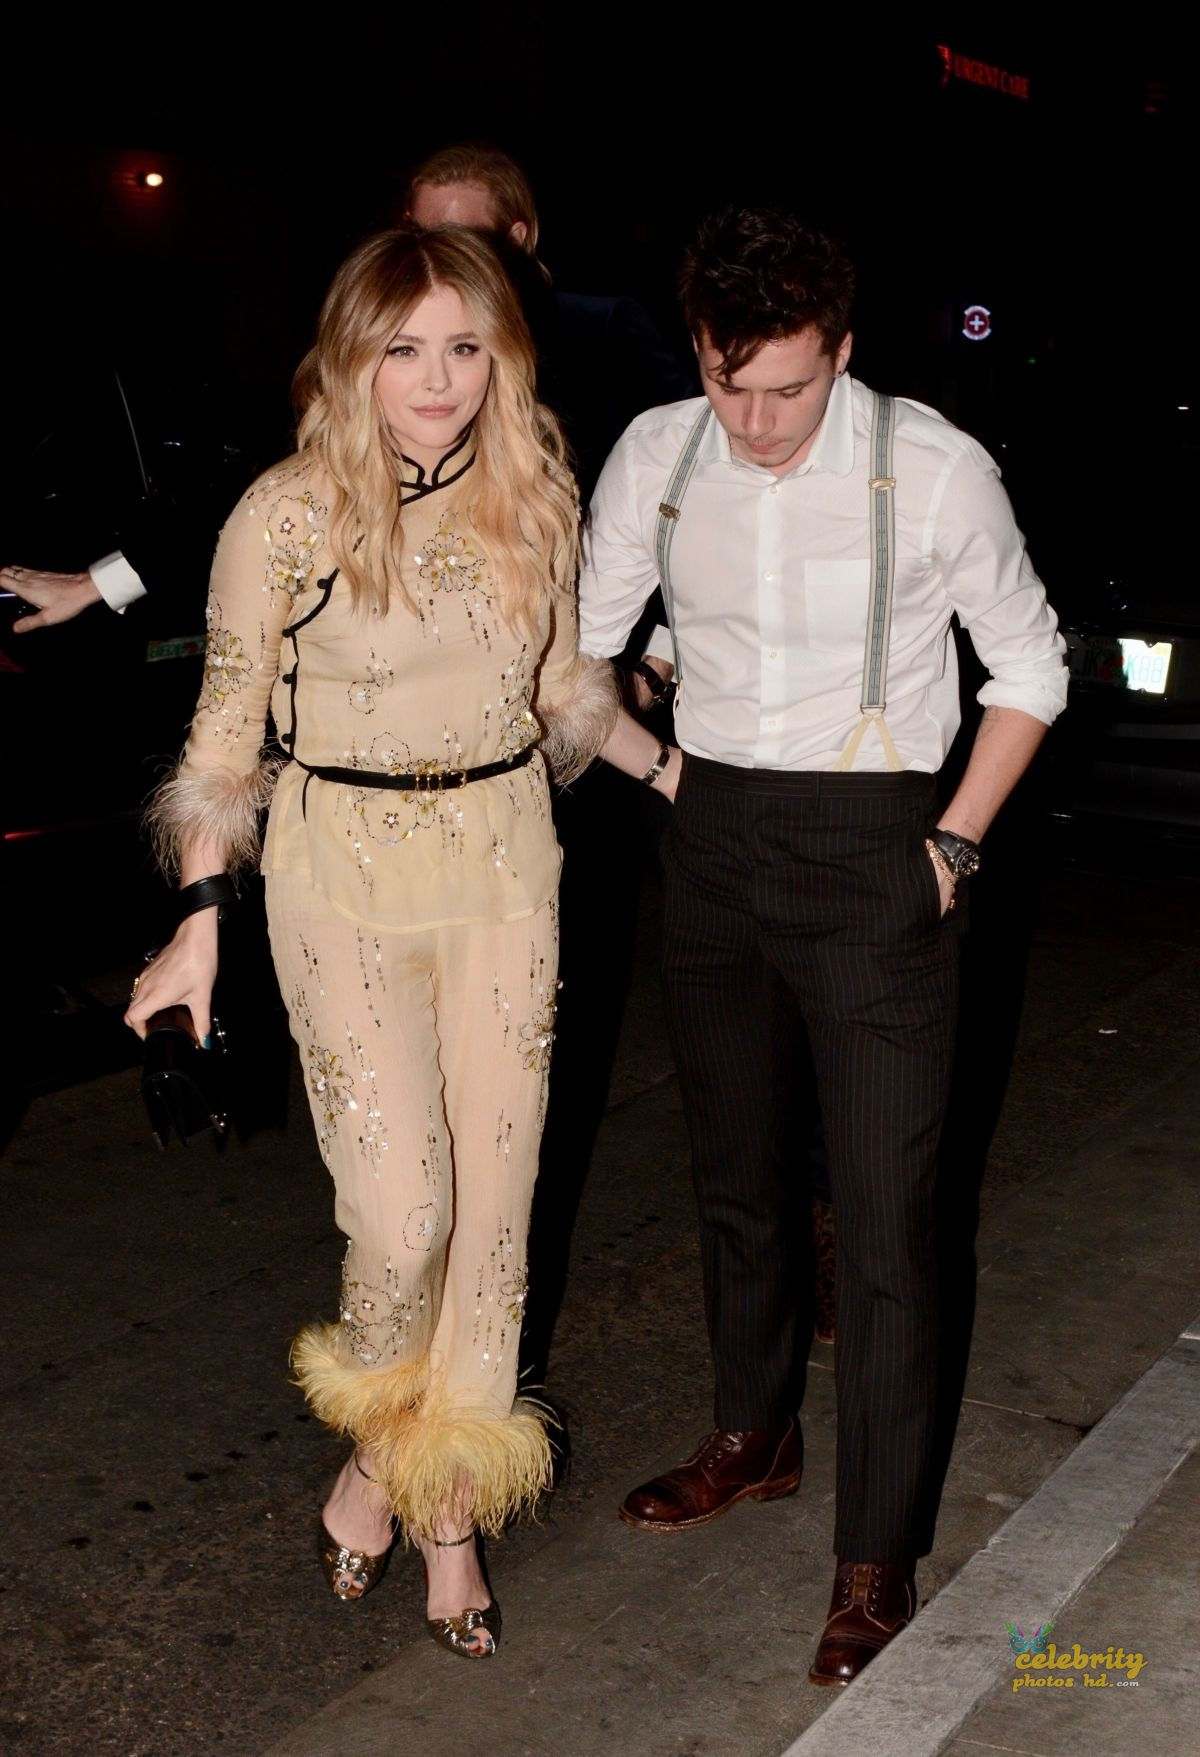 CHLOE MORETZ Celebrates Her 21st Birthday with Brooklyn Beckham in Los Angeles (2)